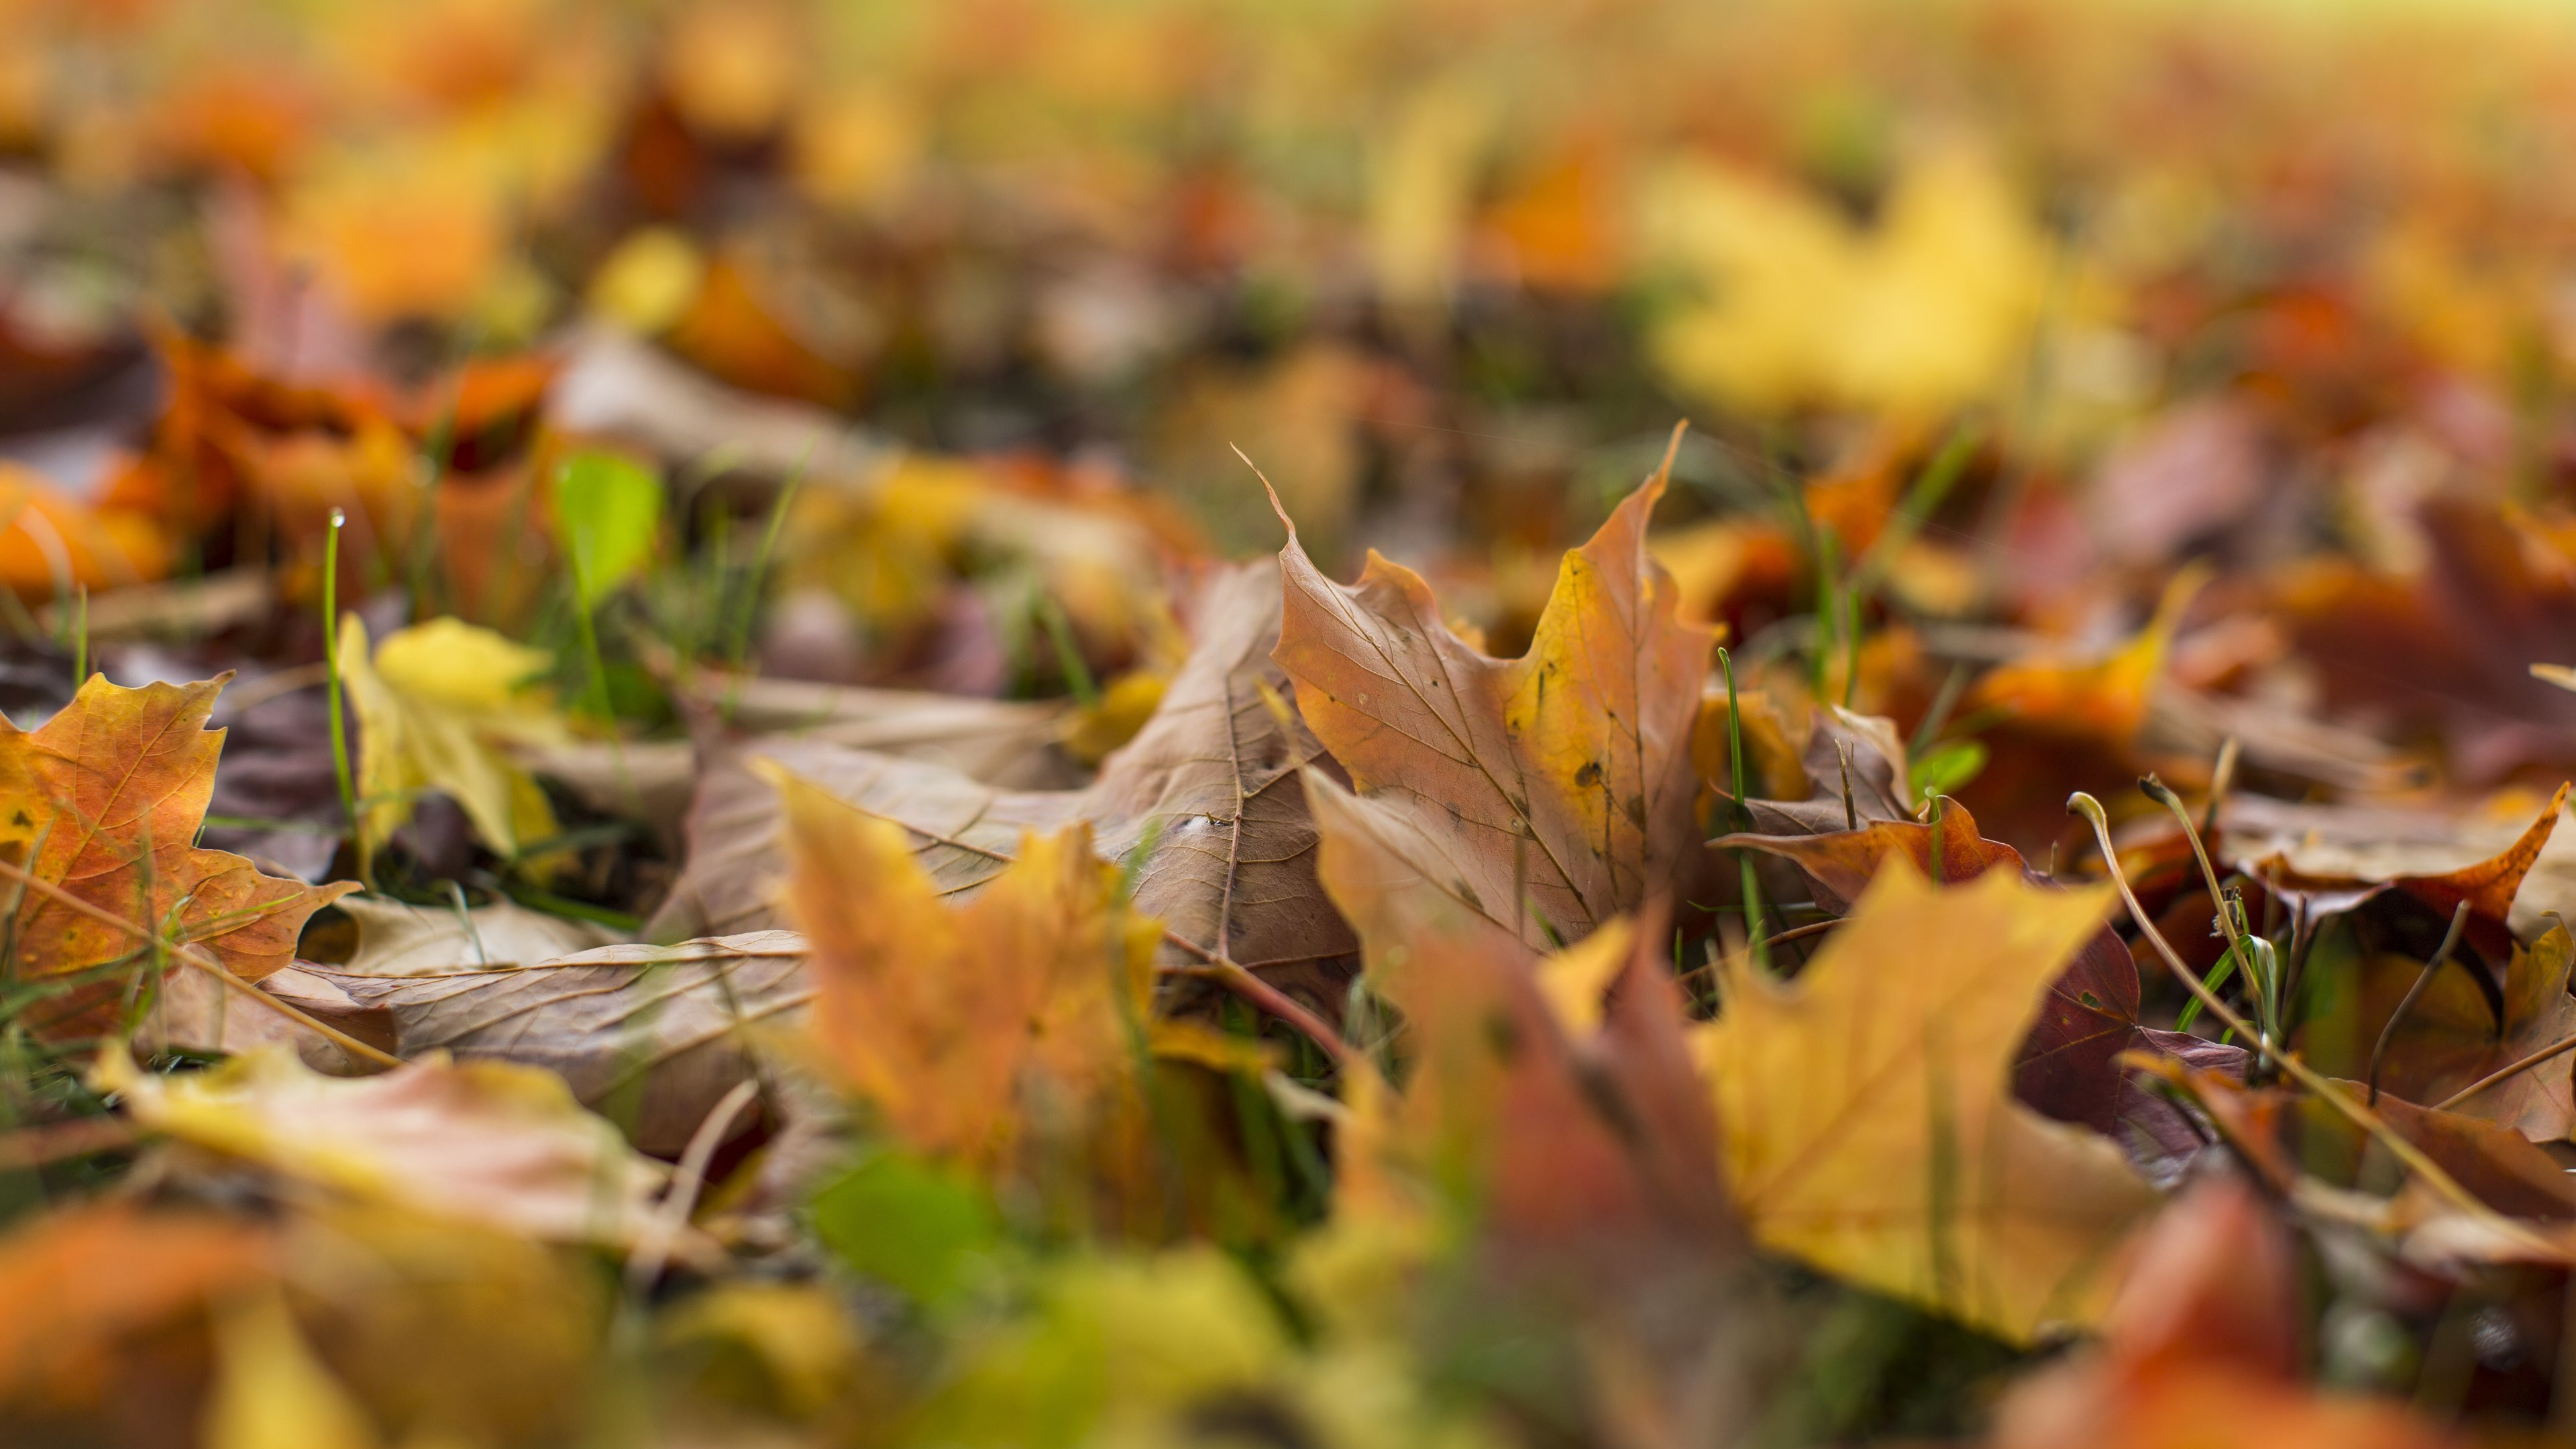 Fall Hd Backgrounds For Ultra Hd 4k Desktop Happy Fall Friday 2007342 Hd Wallpaper Backgrounds Download